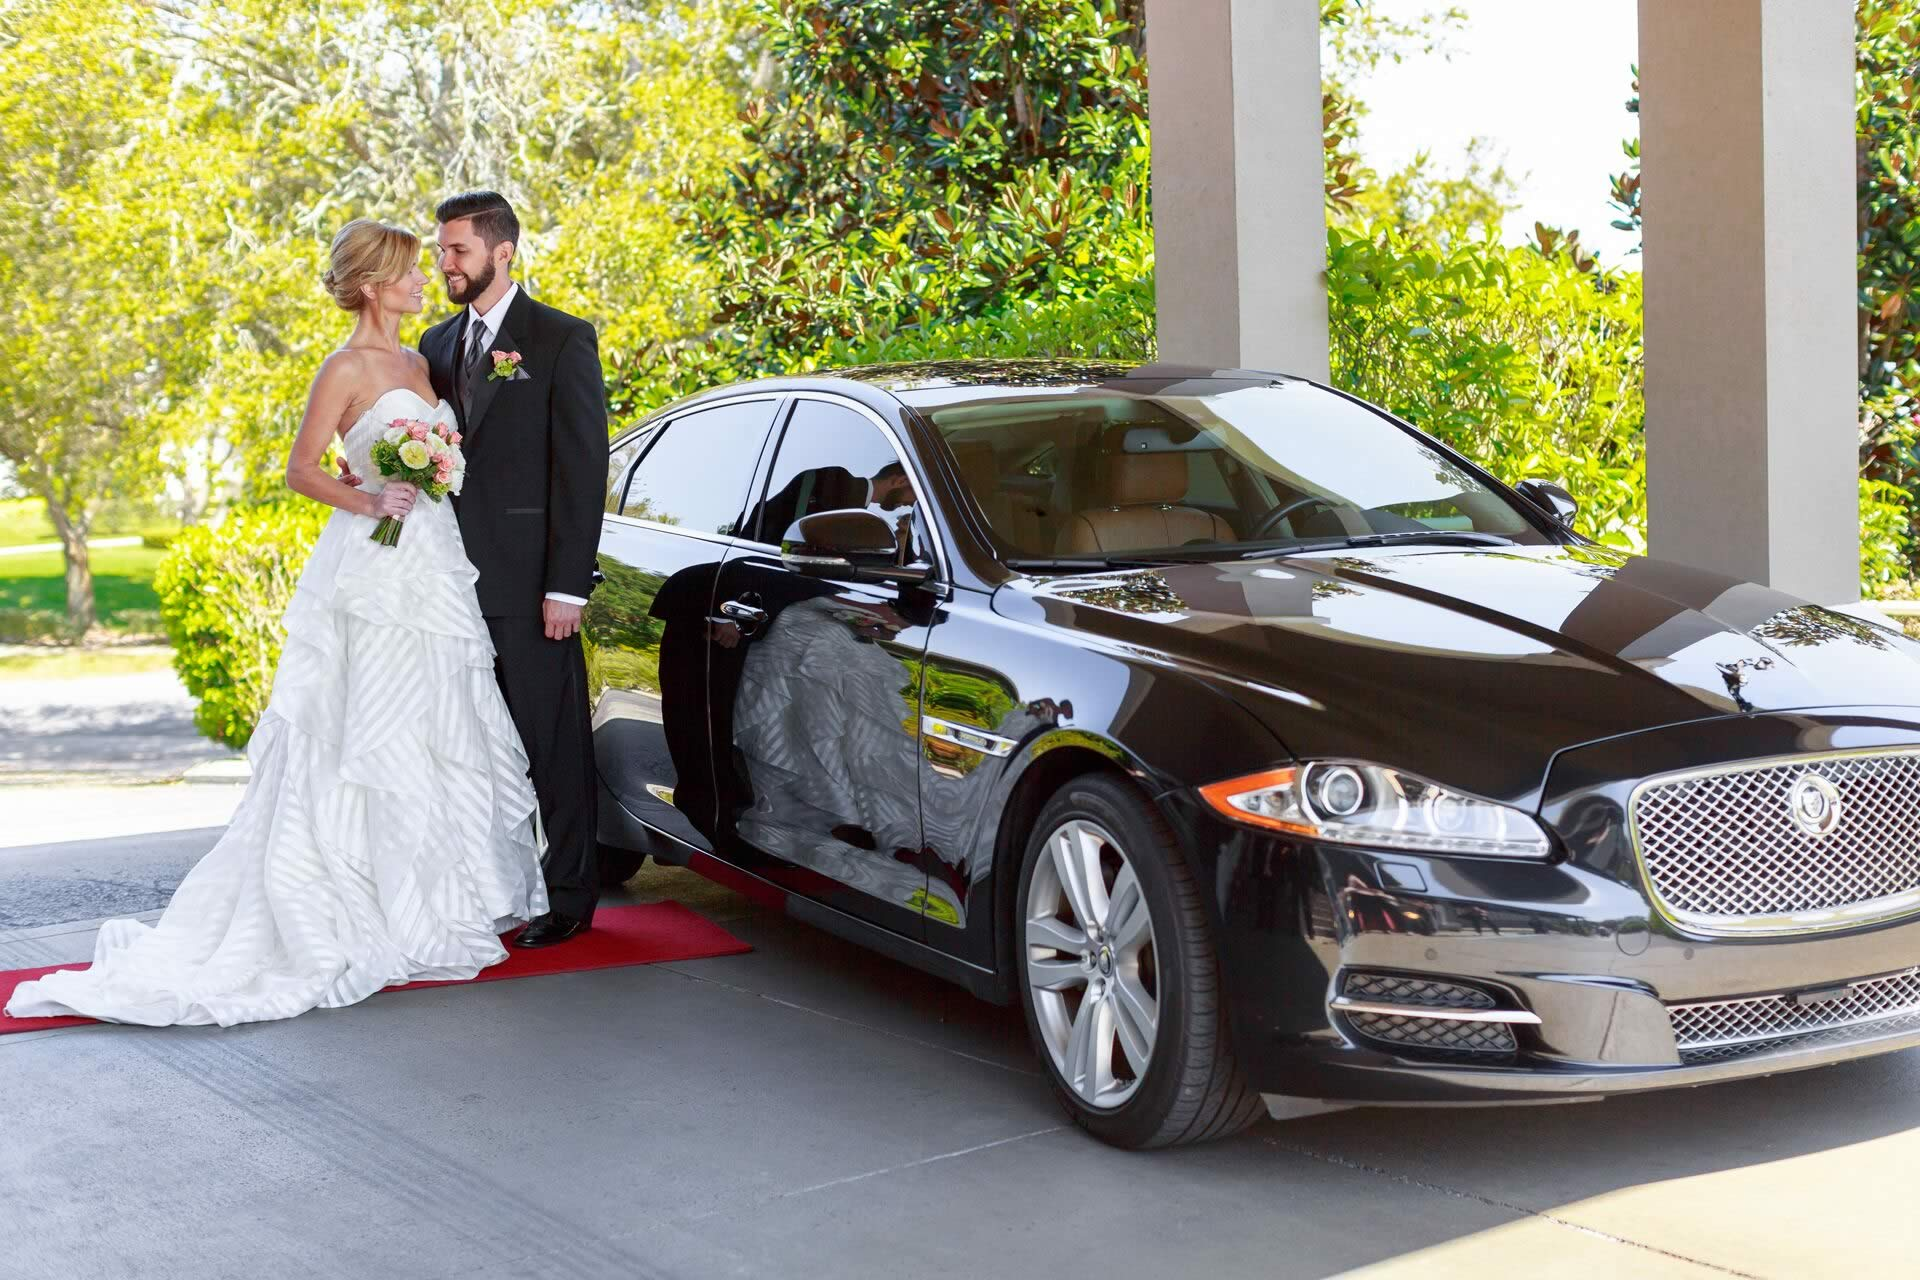 VIP Wedding Transportation - Image provided by: VictoriaAngela.com